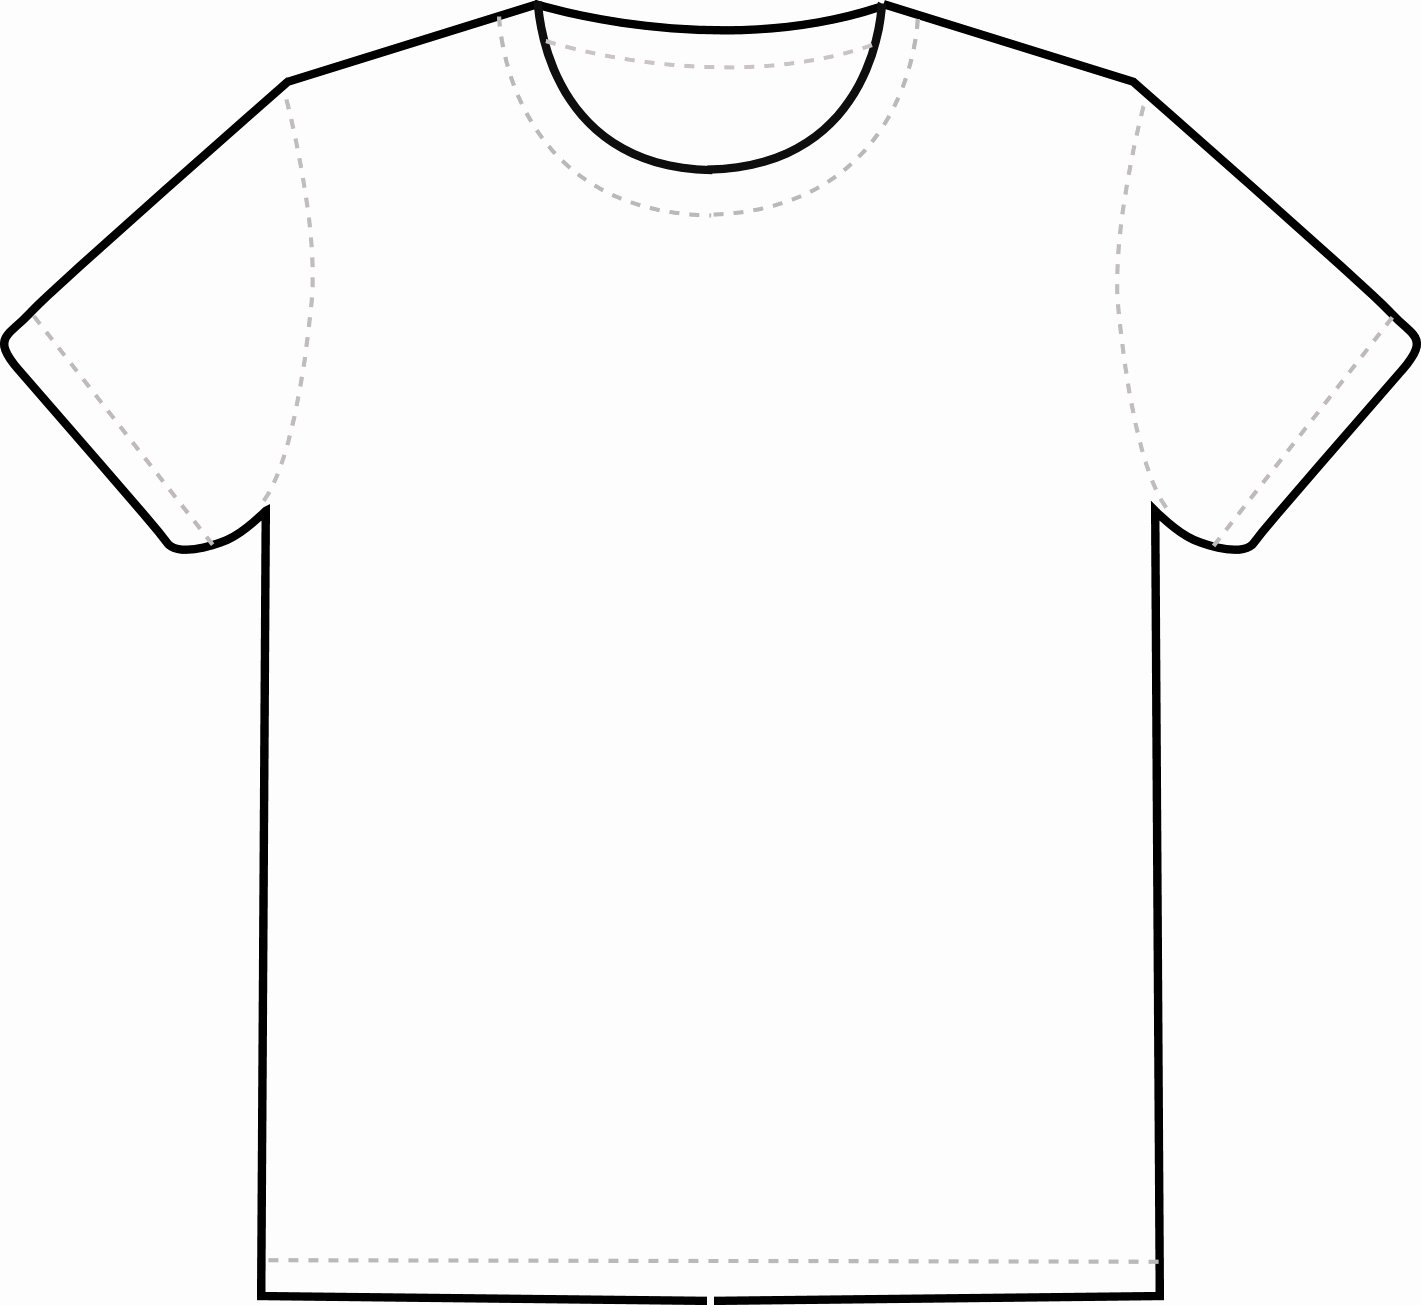 Blank Roblox Shirt Template Unique Free T Shirt Template Printable Download Free Clip Art